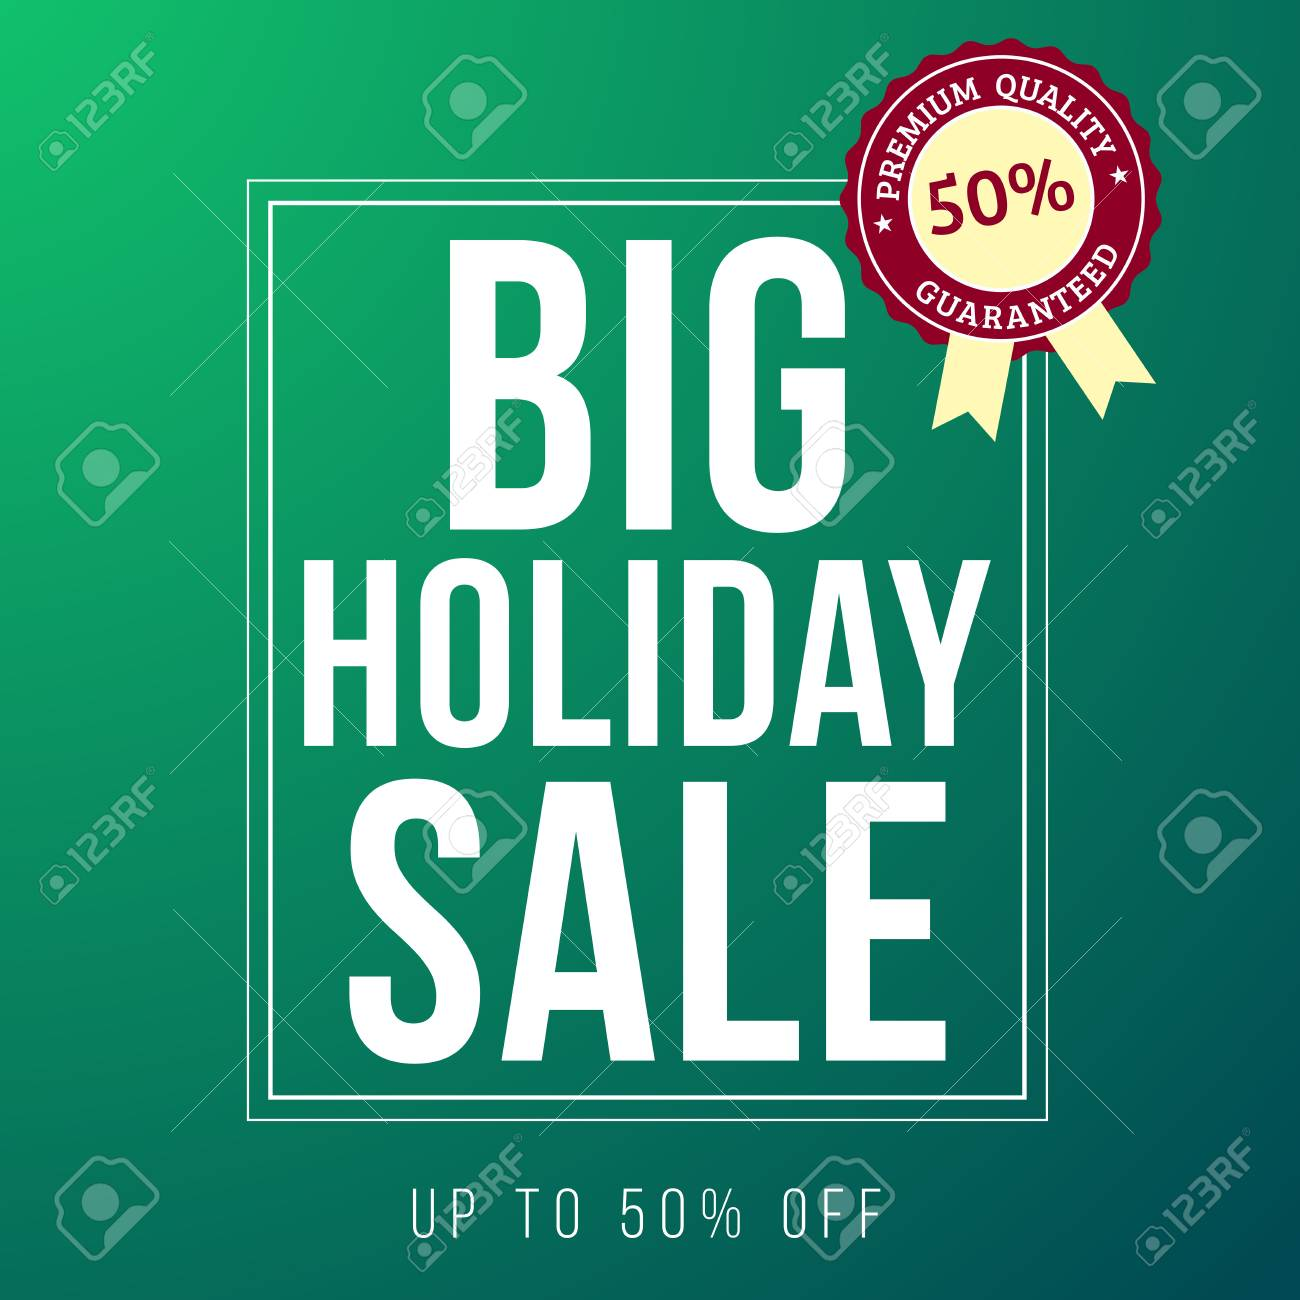 Holiday Sale Ad Designed In A Modern Flat Style On Green Background Stock Photo Picture And Royalty Free Image Image 34185110